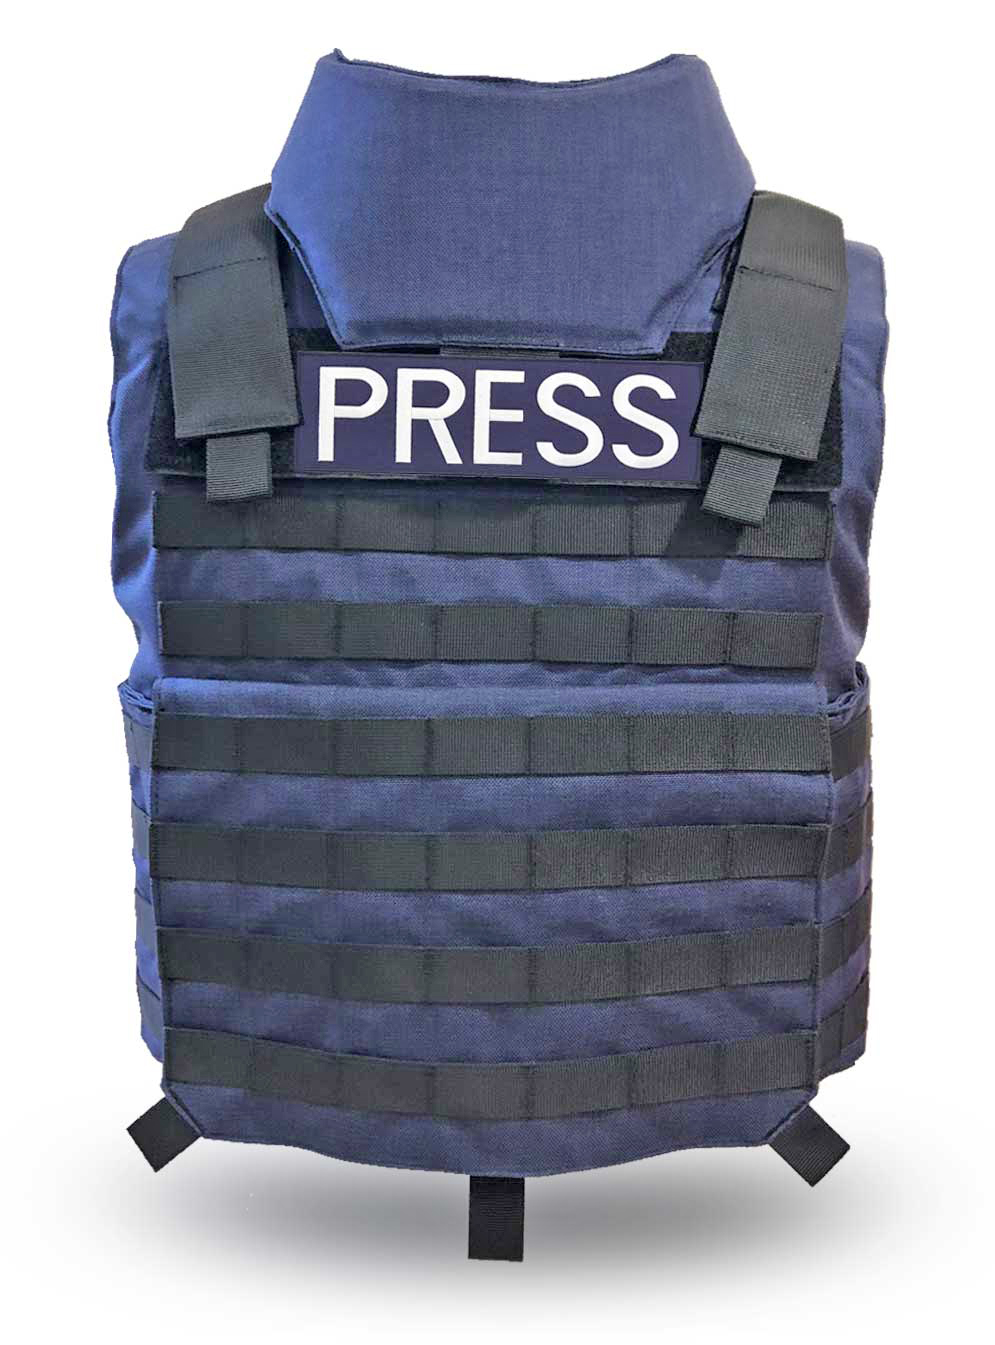 Vest body armor lrg 1571 battle investment analysis for real estate decisions 7th pdf files